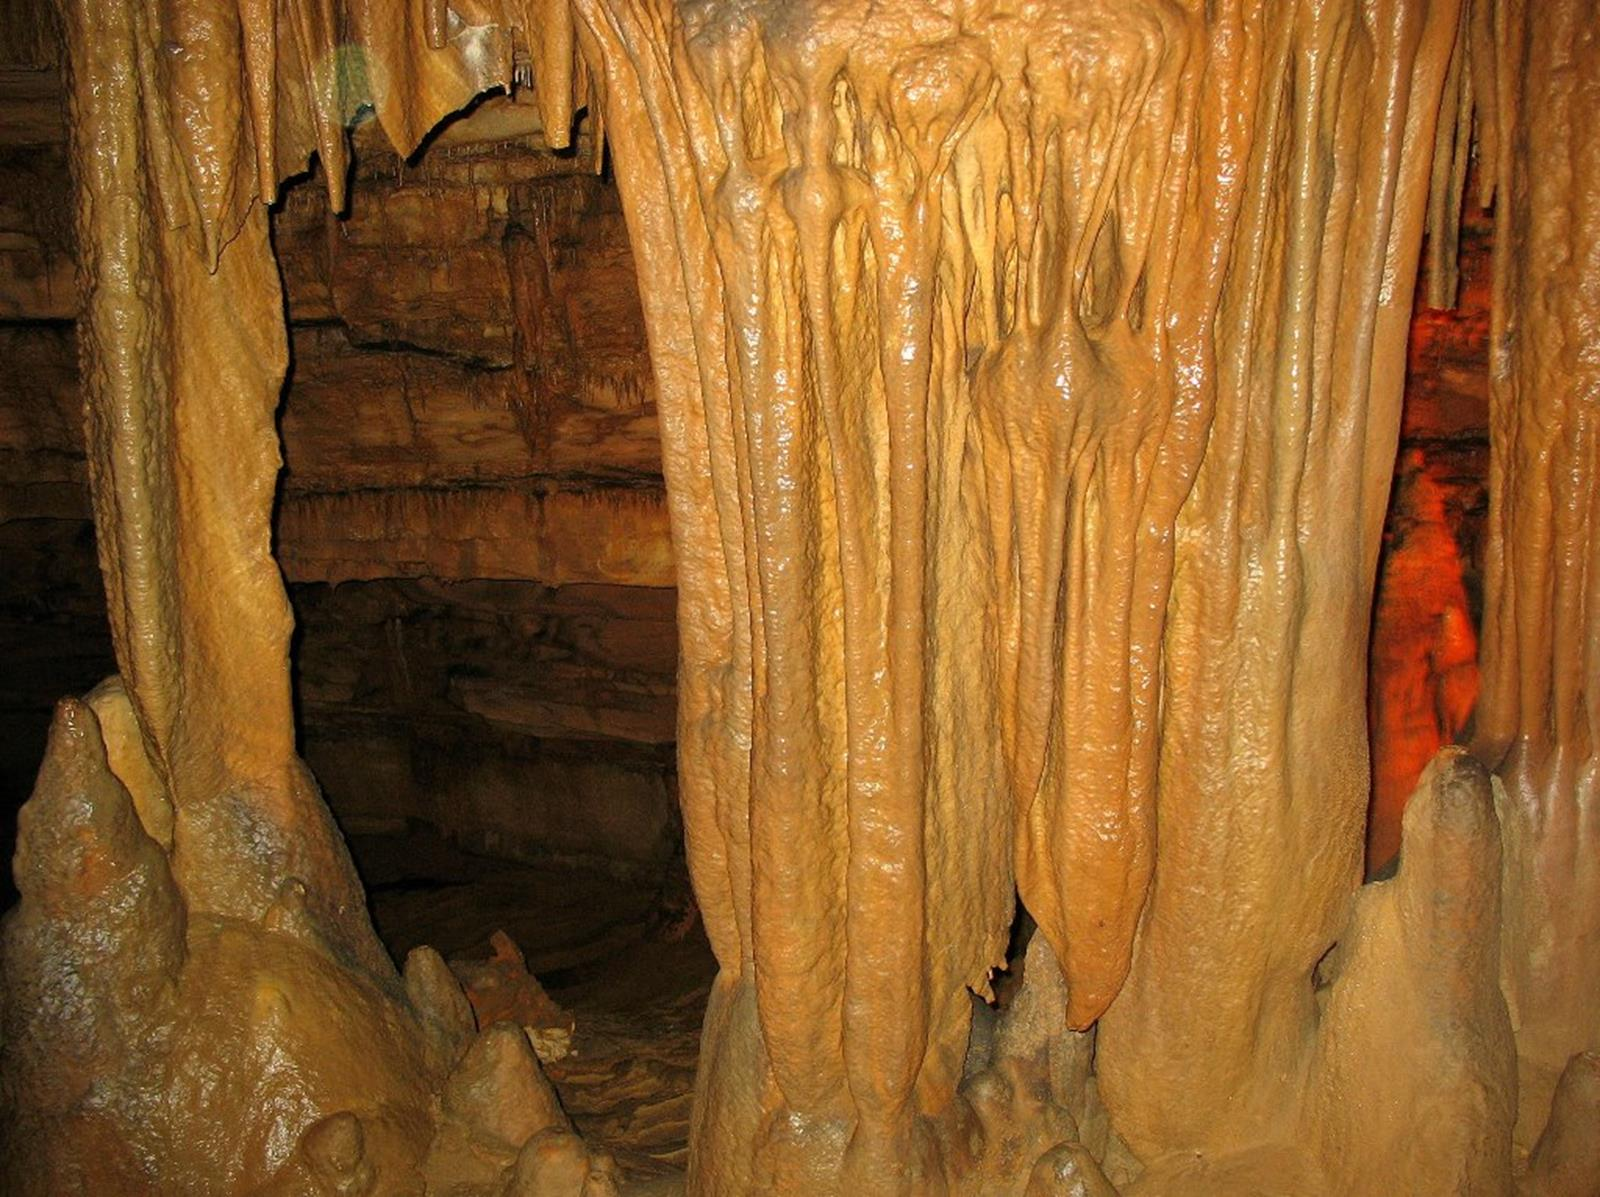 Marengo Cave. Credit FTSKfan at en.wikipedia